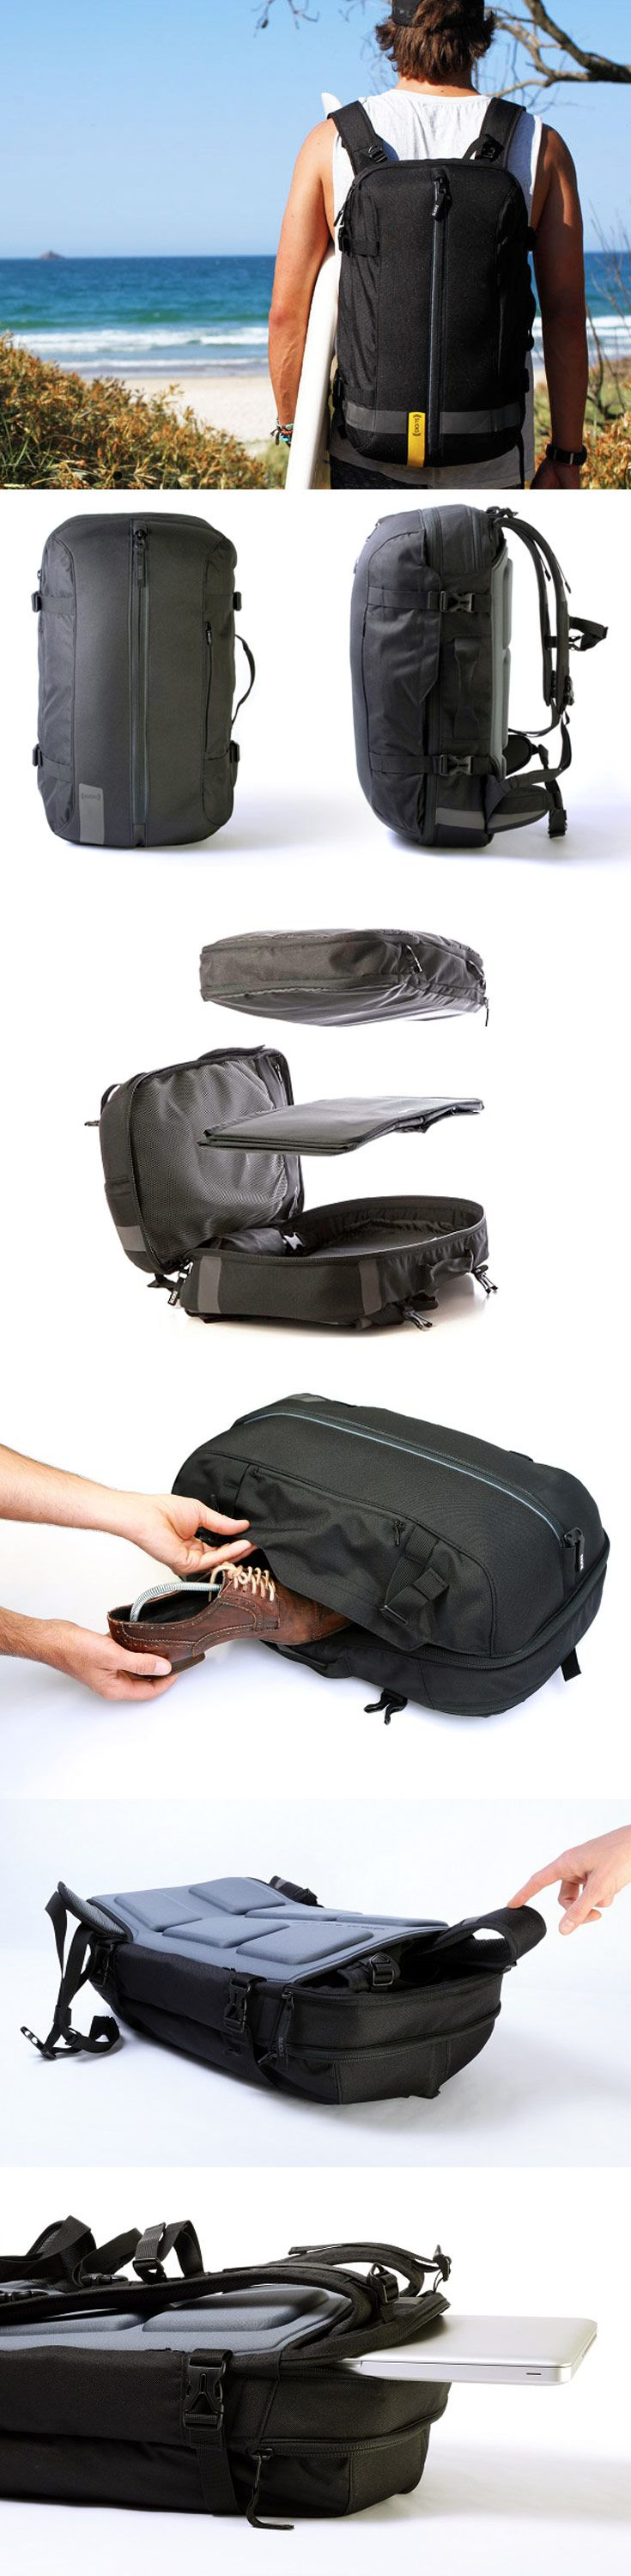 Win a Slicks Expanded Carryon Backpack here: https://slicks.com/expanded?kid=7H6Y2 It's the one modular bag for ALL OCCASIONS, connecting work and play. SLICKS is an ideal carry-on for leisure getaways, a compact all-rounder on business trips and a practical companion for daily commutes to work. In just a few simple steps, it transforms from a sleek carry-on travel backpack to a discrete office-friendly briefcase or a trendy shoulder bag, adapting easily to business or leisure…